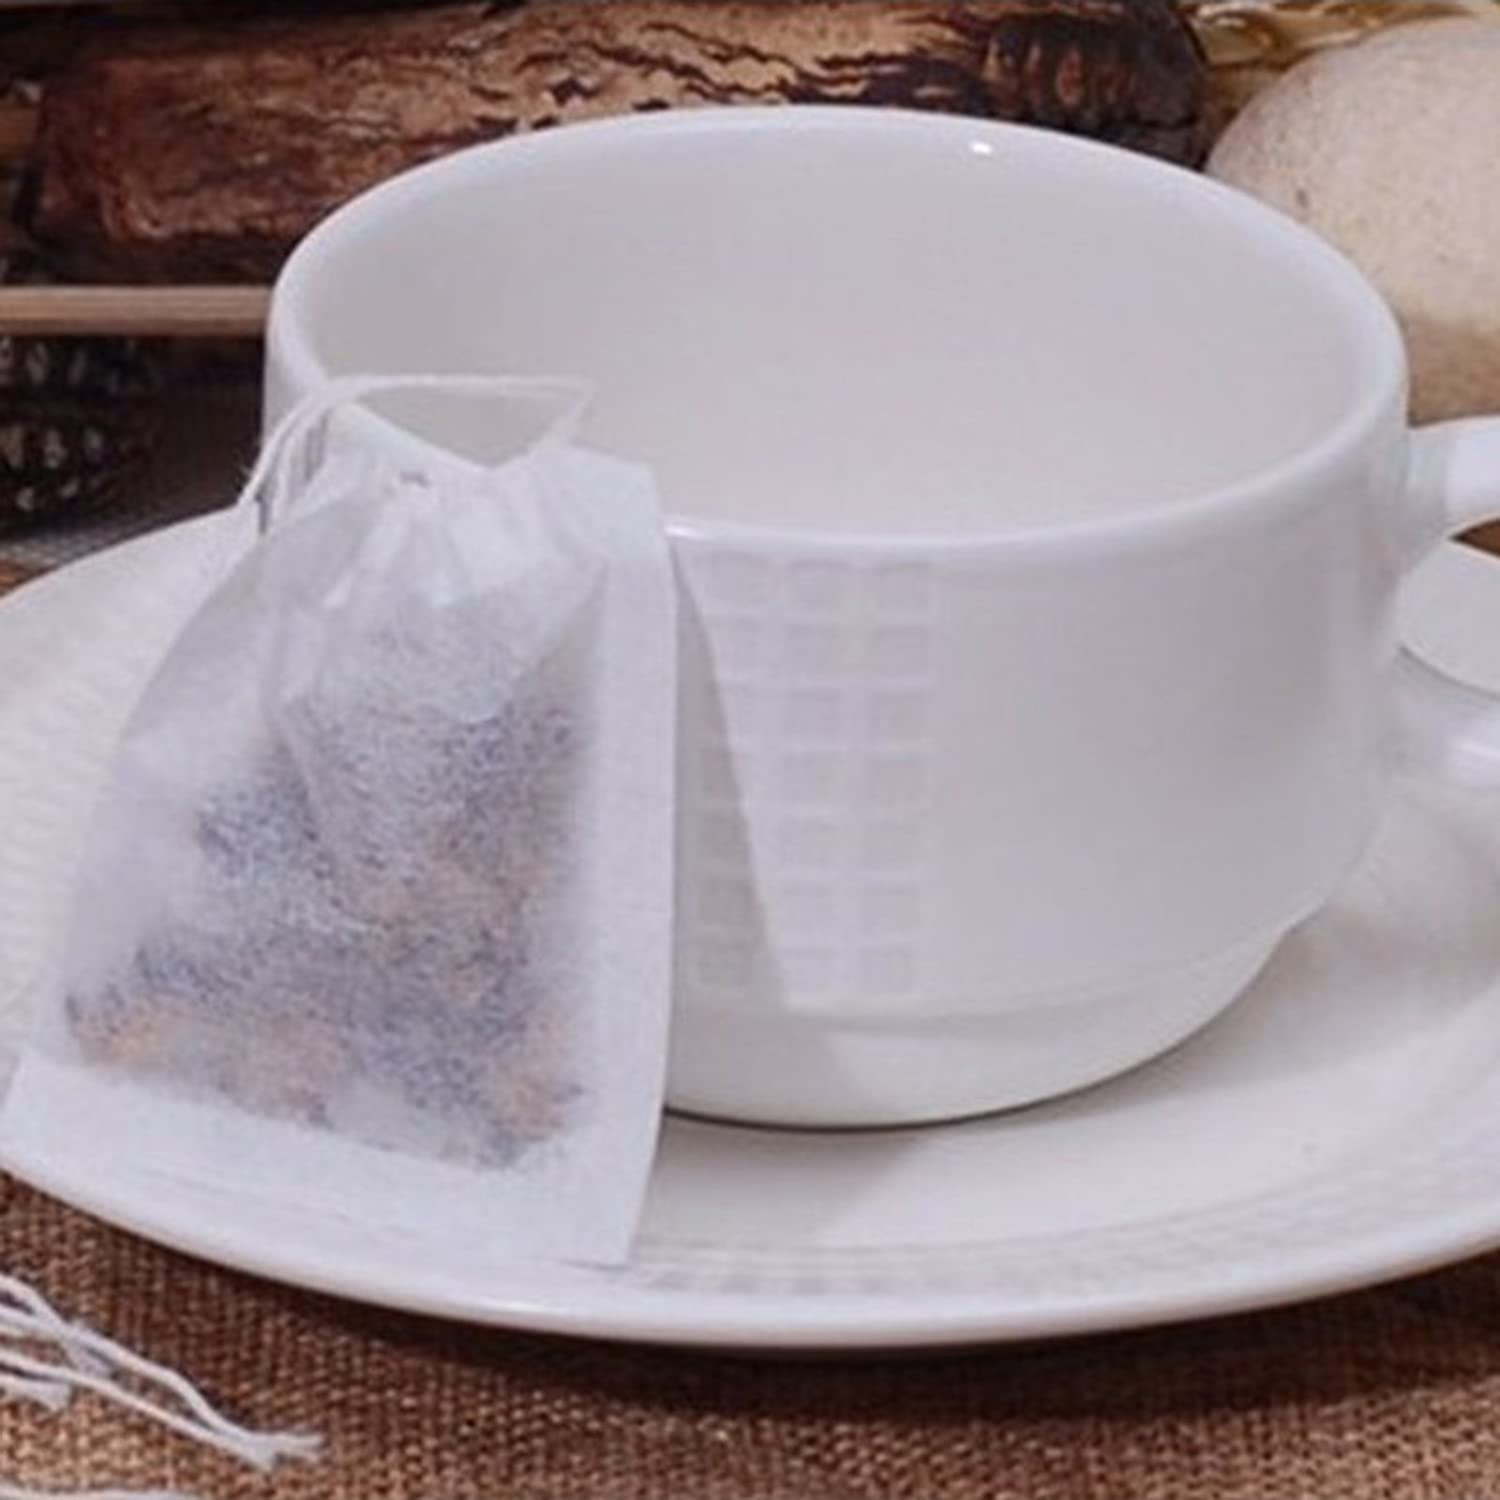 AIHOME Pack of 100 Empty Disposable Multi-purpose String Heat Seal Filter Paper Tea Bags for Herb Loose Leaf Tea